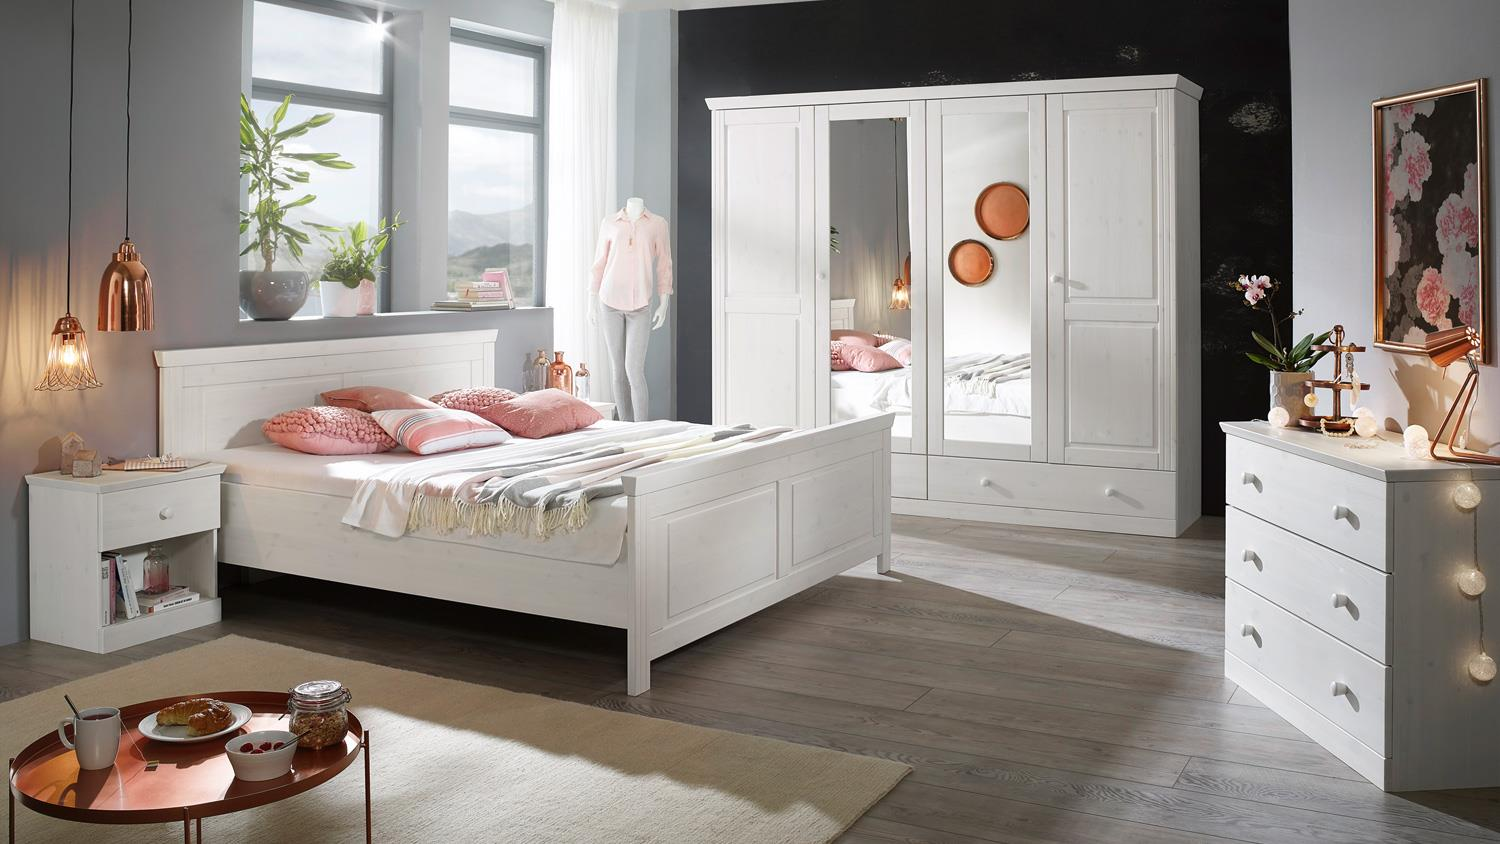 bettgestell genia kiefer massiv wei gewachst 180x200 cm. Black Bedroom Furniture Sets. Home Design Ideas